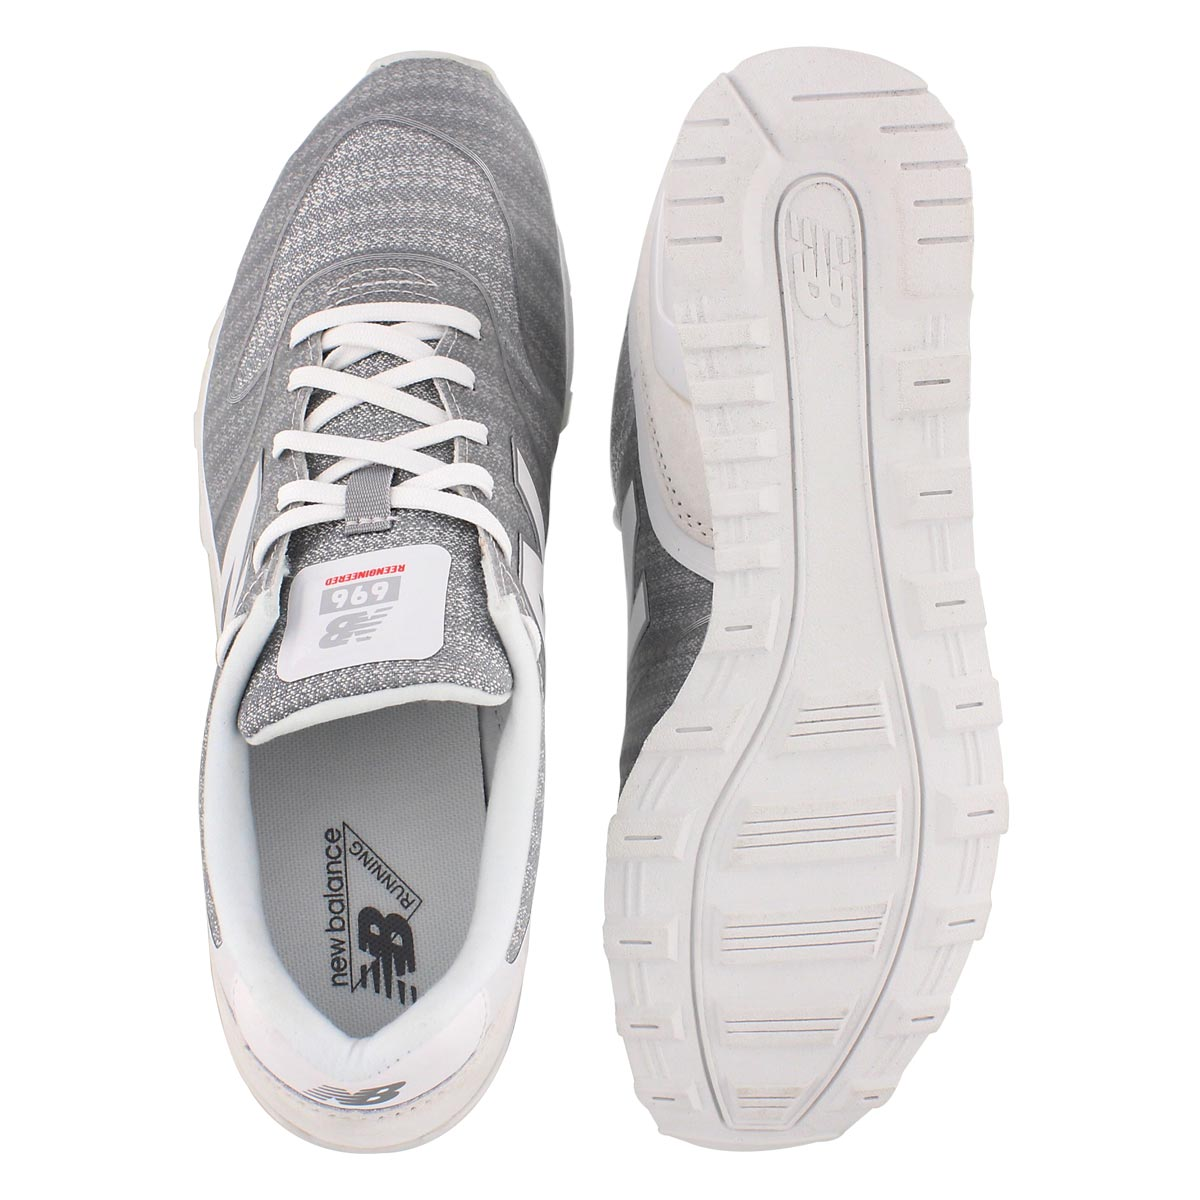 Lds 696 wht/shockwave lace up sneaker